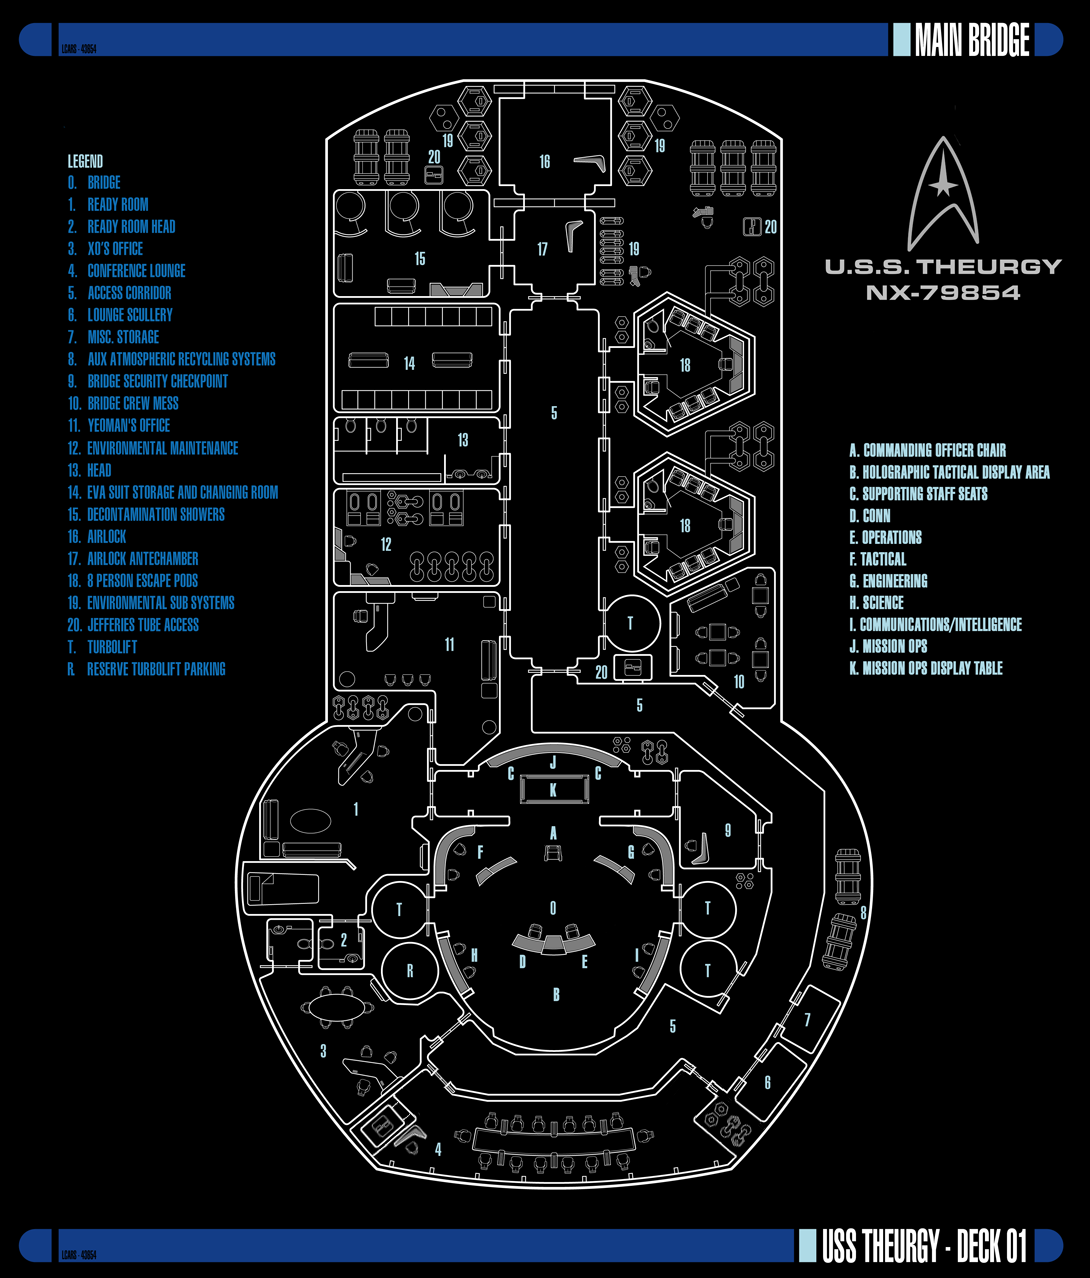 USS-Theurgy-NX-79854---Deck-01---small.png